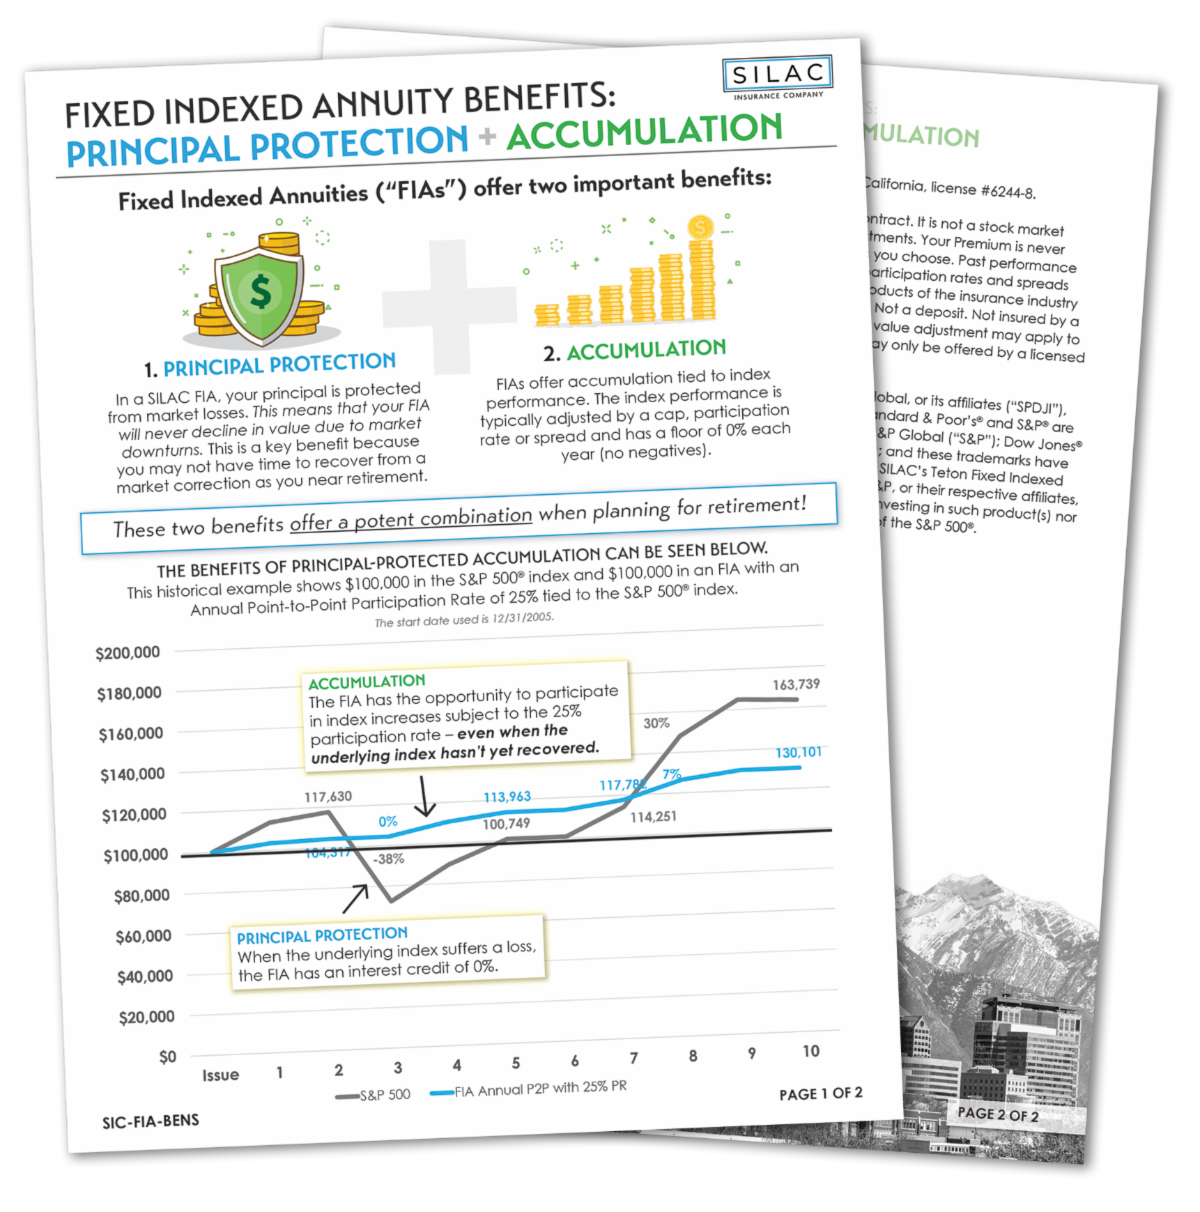 Fixed Indexed Annuity Benefits: Principal Protection +Accumulation